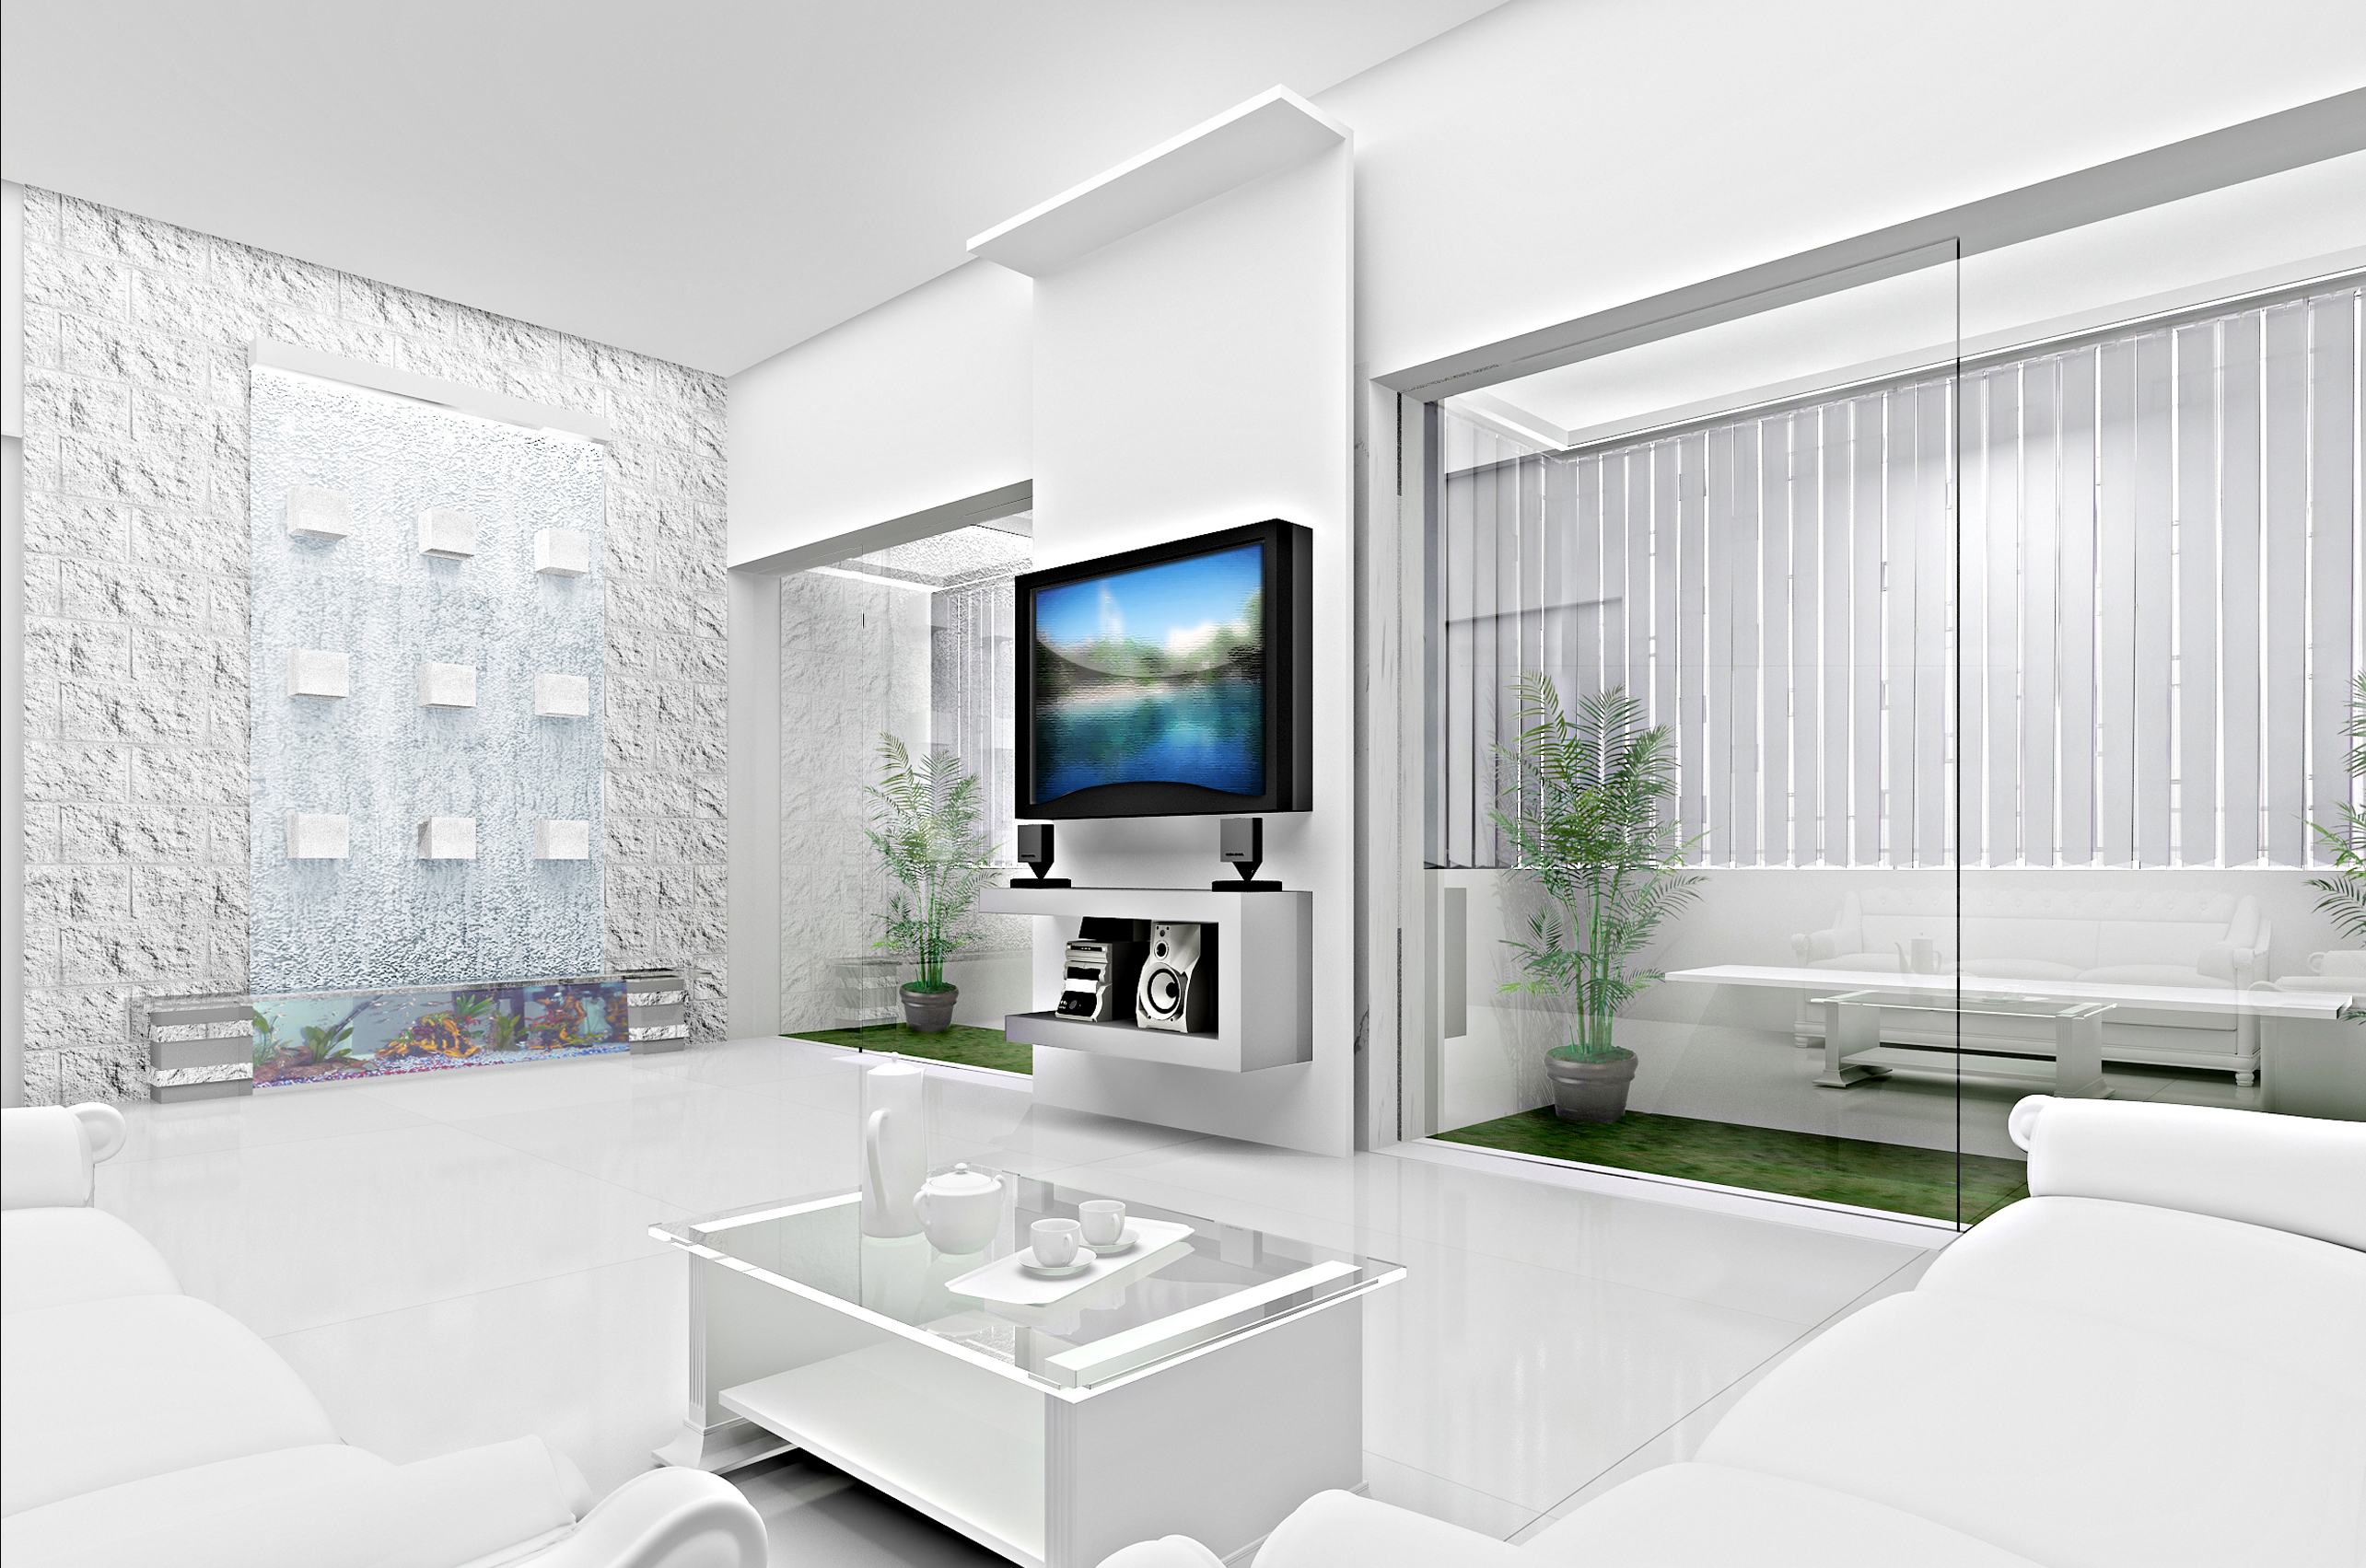 Conceptual 3D visualization for a living room. The concept is totally white and glass and steel.